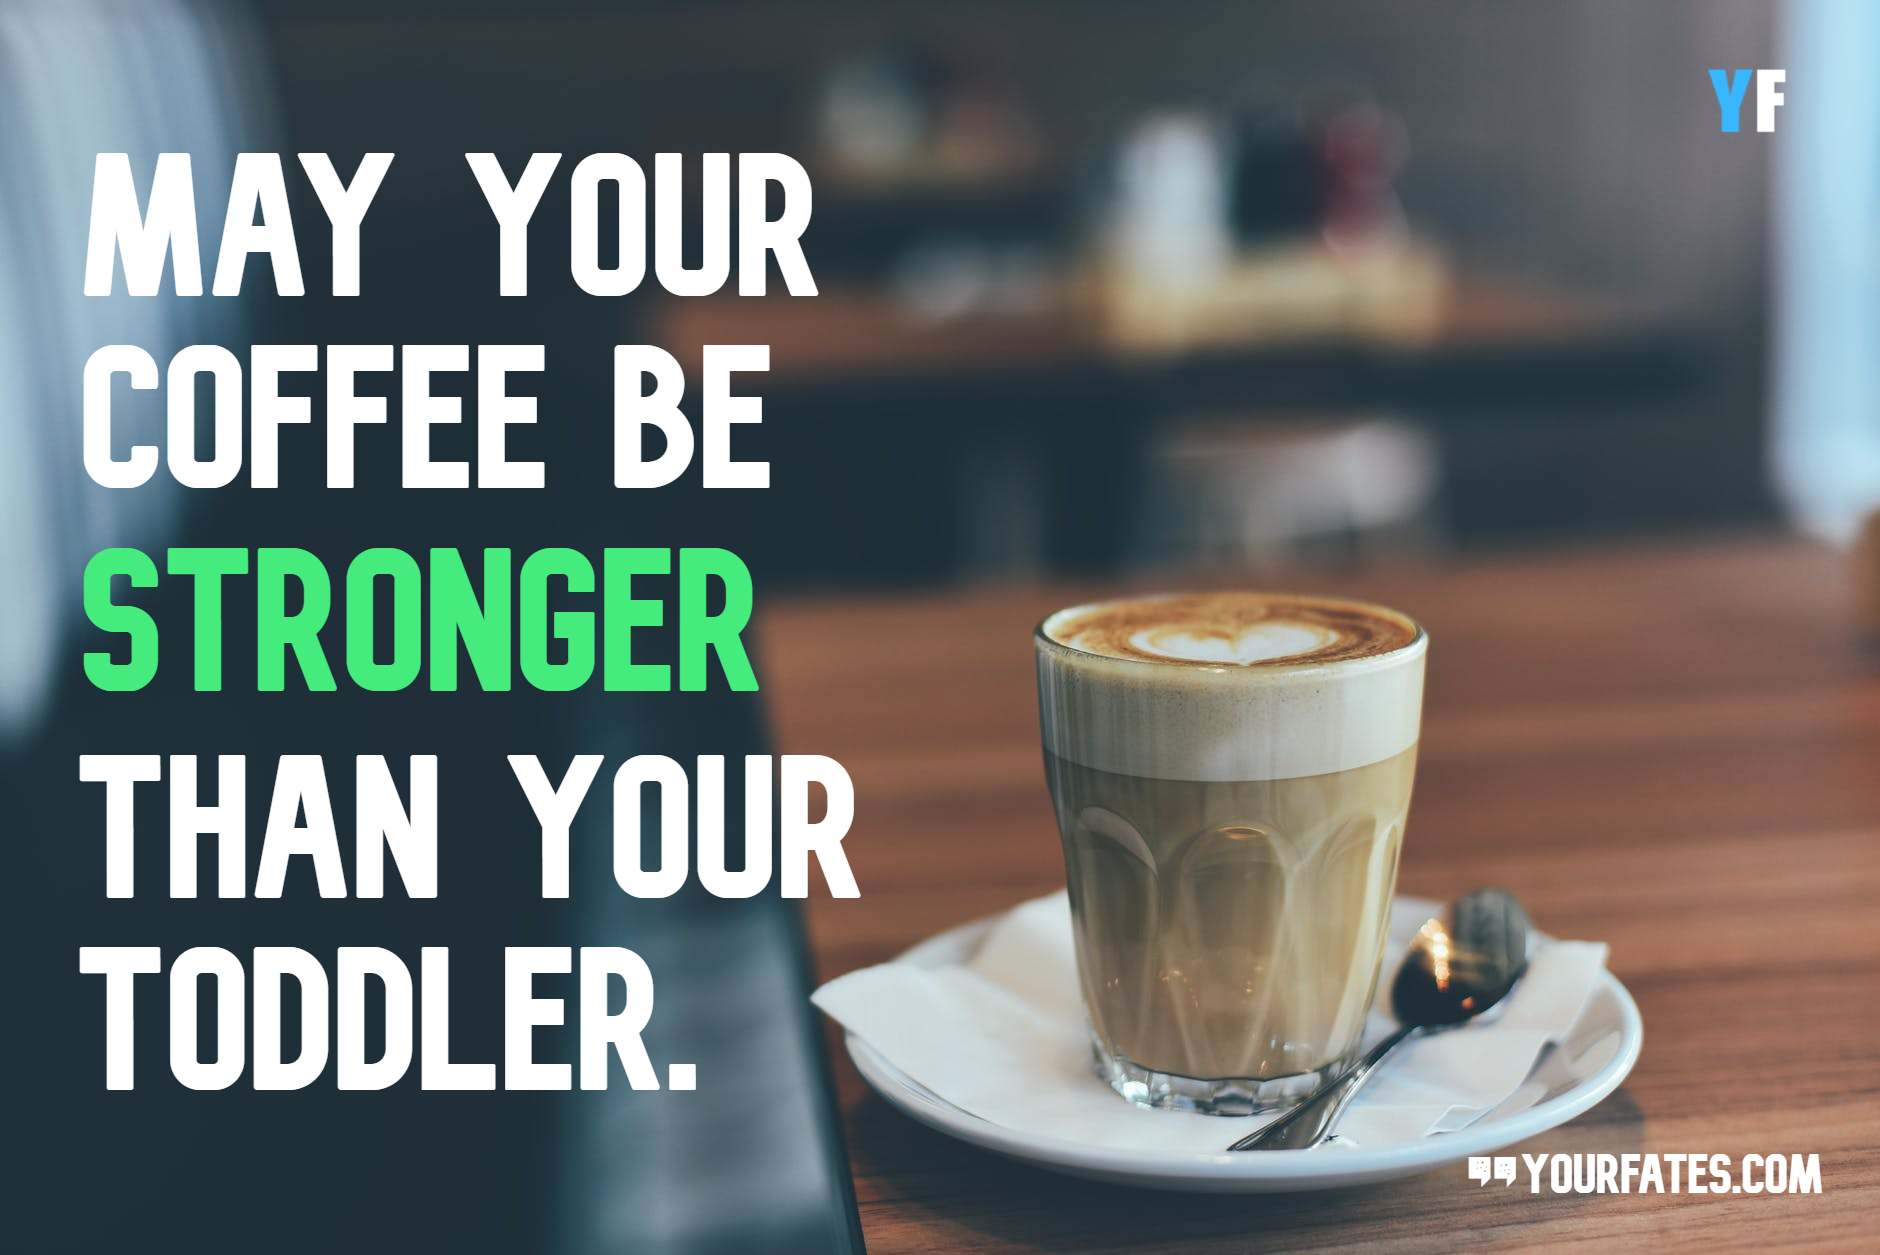 inspirational coffee quotes